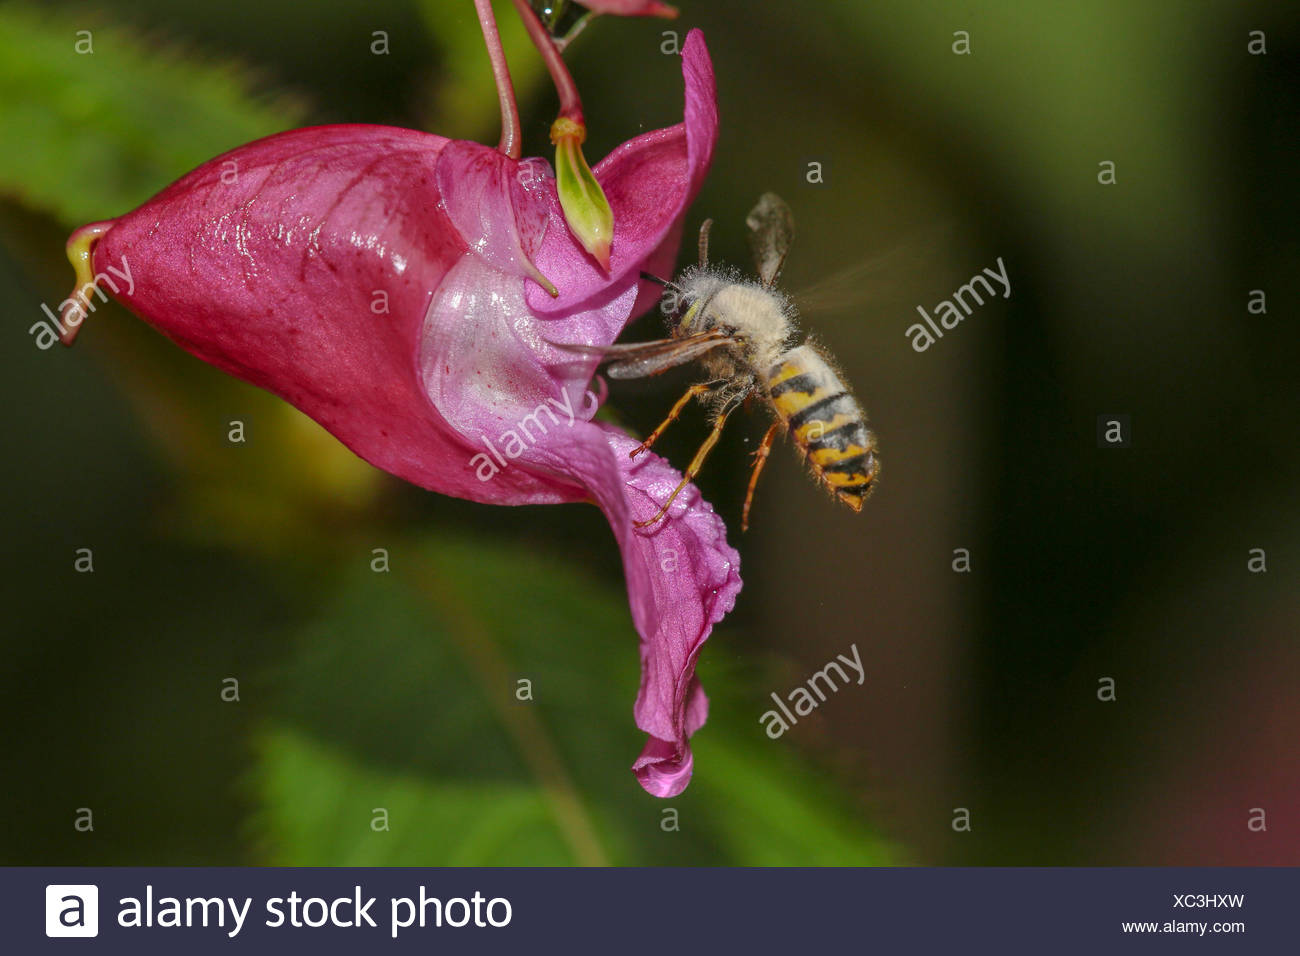 common wasp (Vespula vulgaris, Paravespula vulgaris), infected with mould, suckling nectar an a touch-me-not flower, Germany, Bavaria - Stock Image